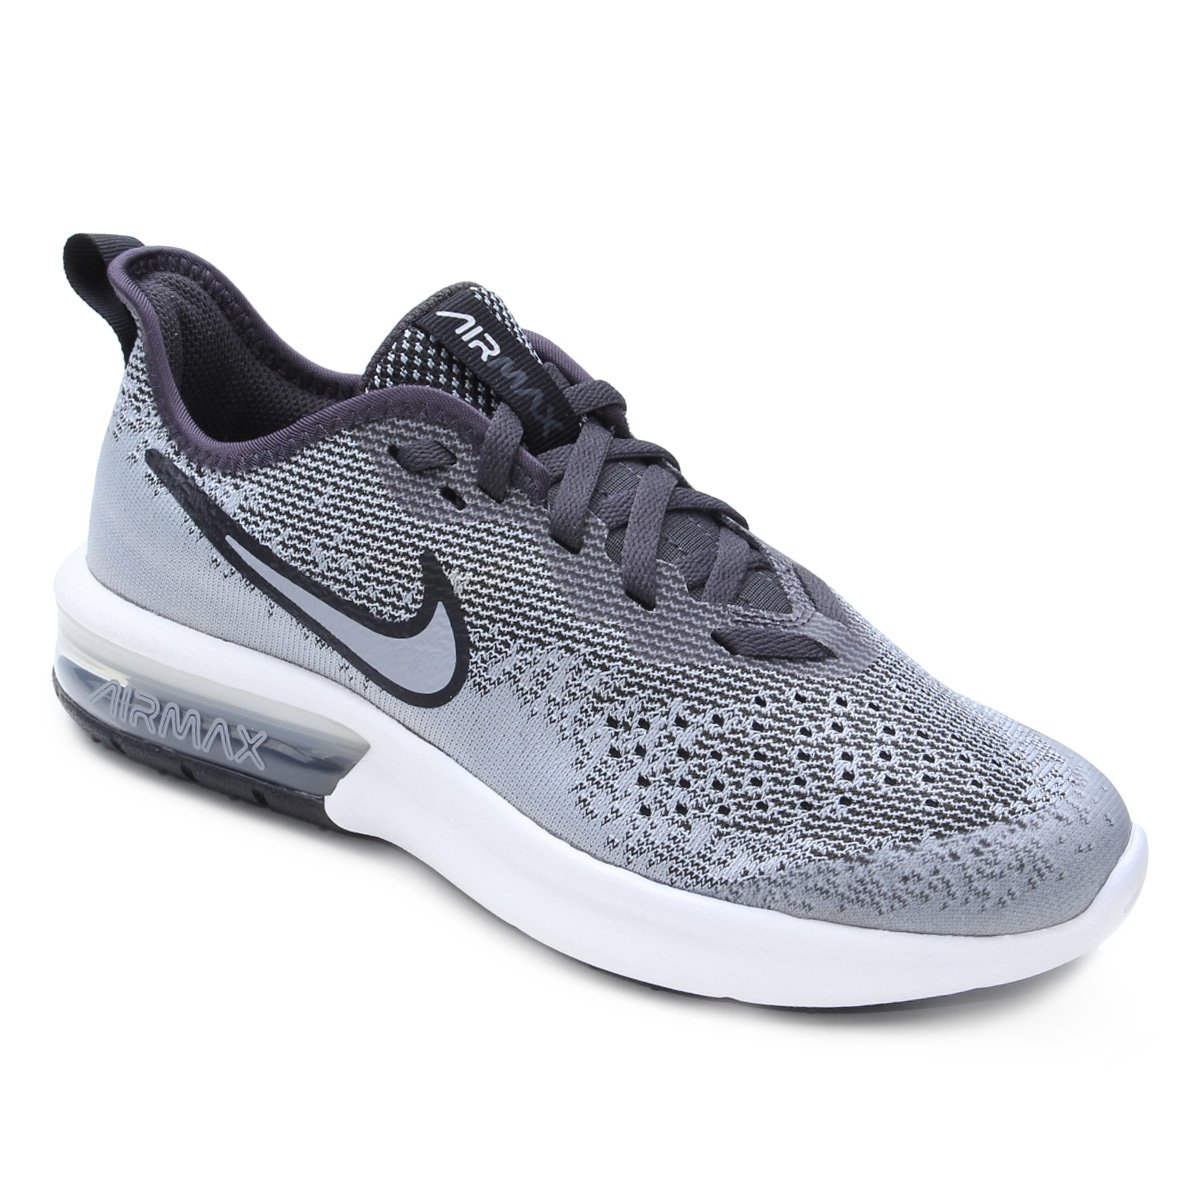 Tênis Infantil Nike Air Max Sequent 4 Masculino - Cinza e Branco ... bfe00ad797643